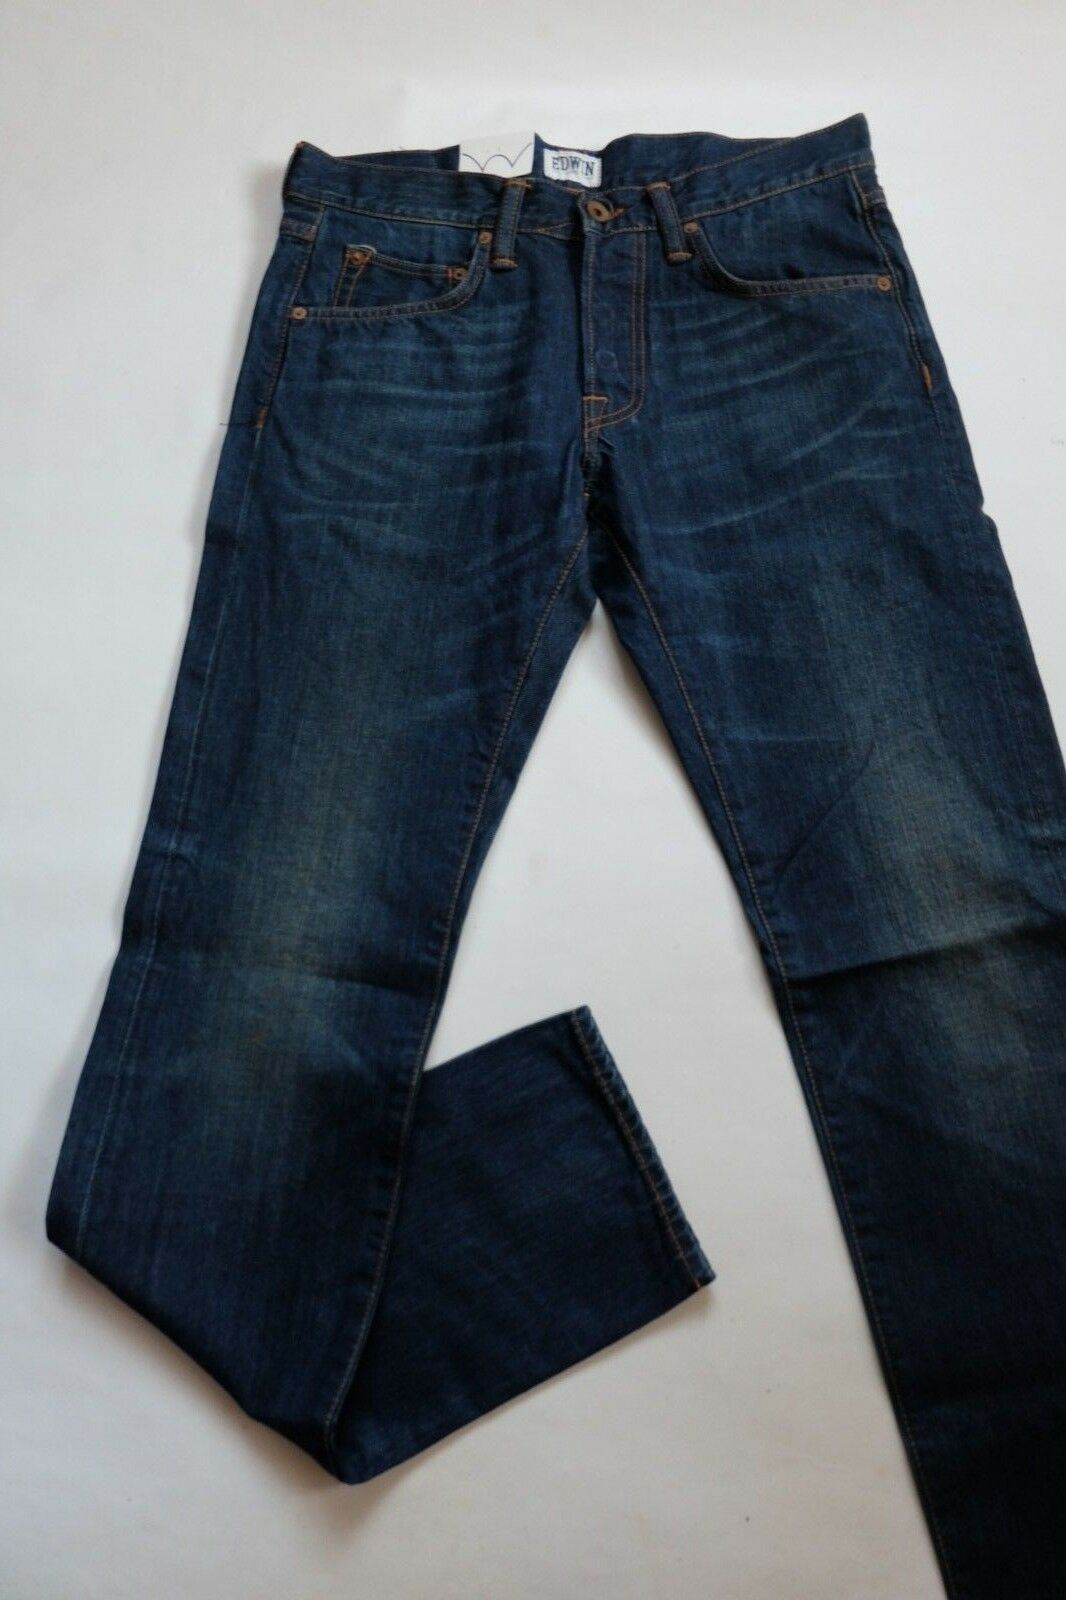 JEANS EDWIN ED 55 RELAXED TAPERED (compact -mid used)  W30 L34 ( i017783 30)